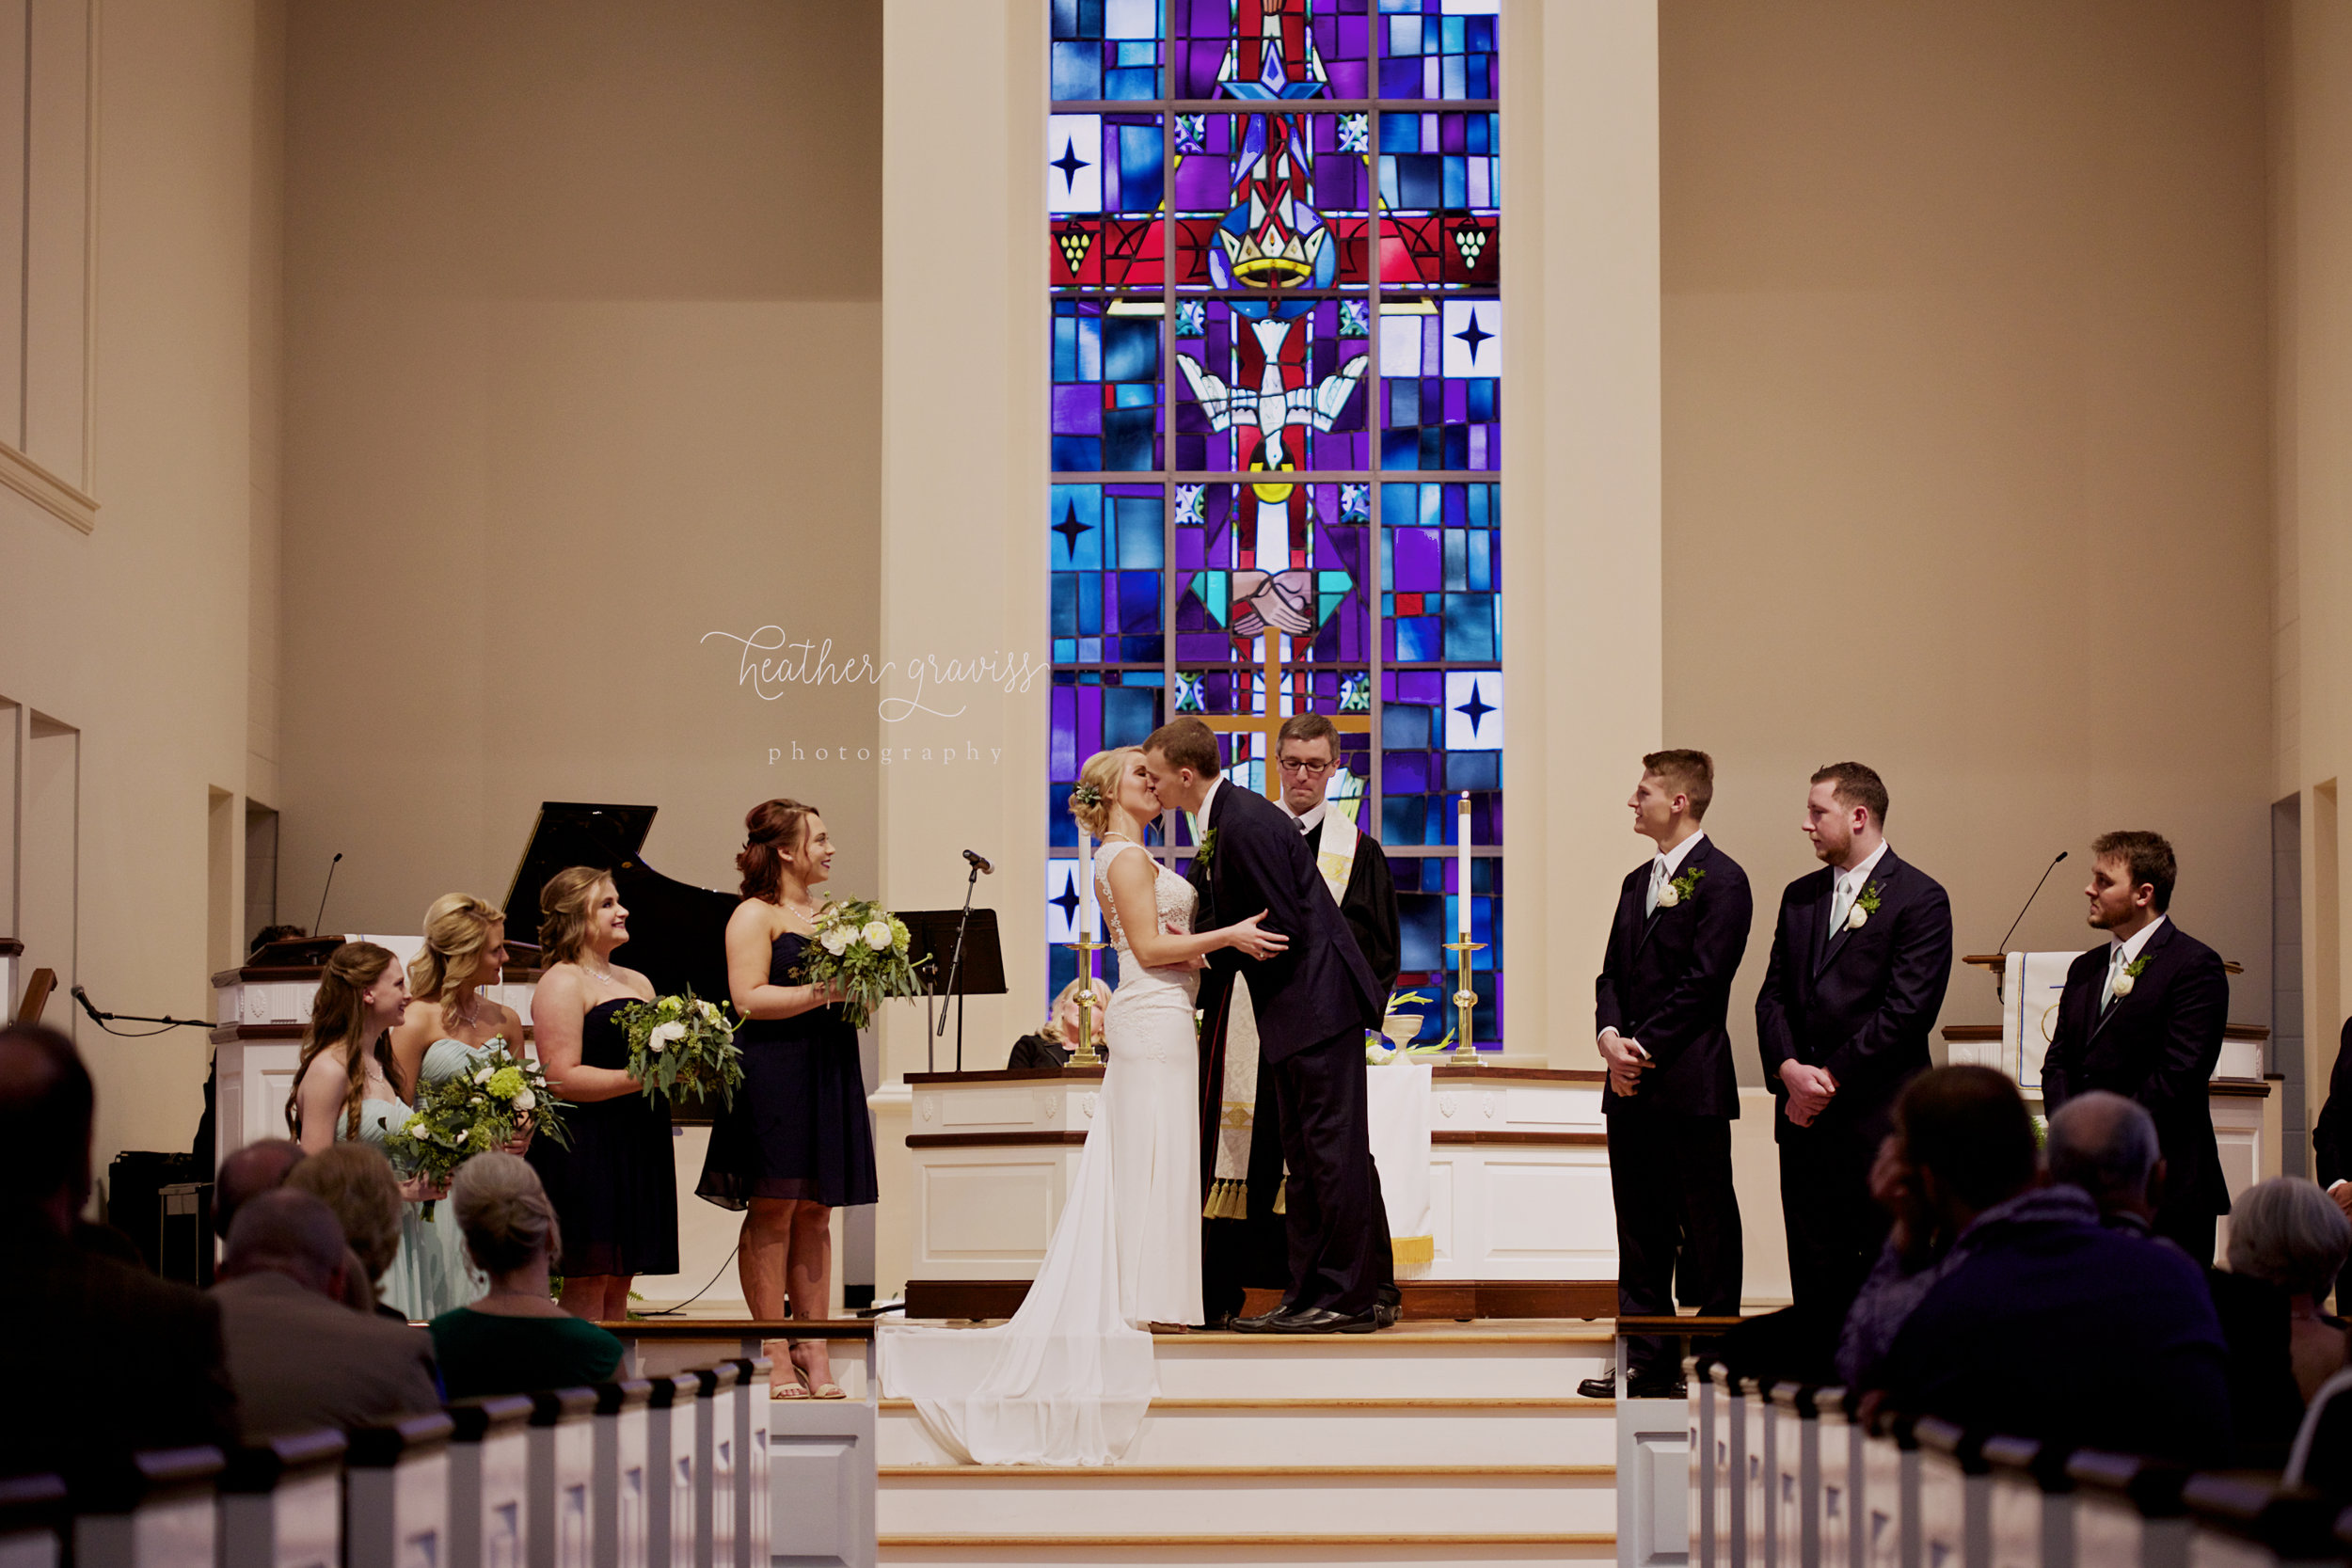 nashville middle tn wedding 070.jpg